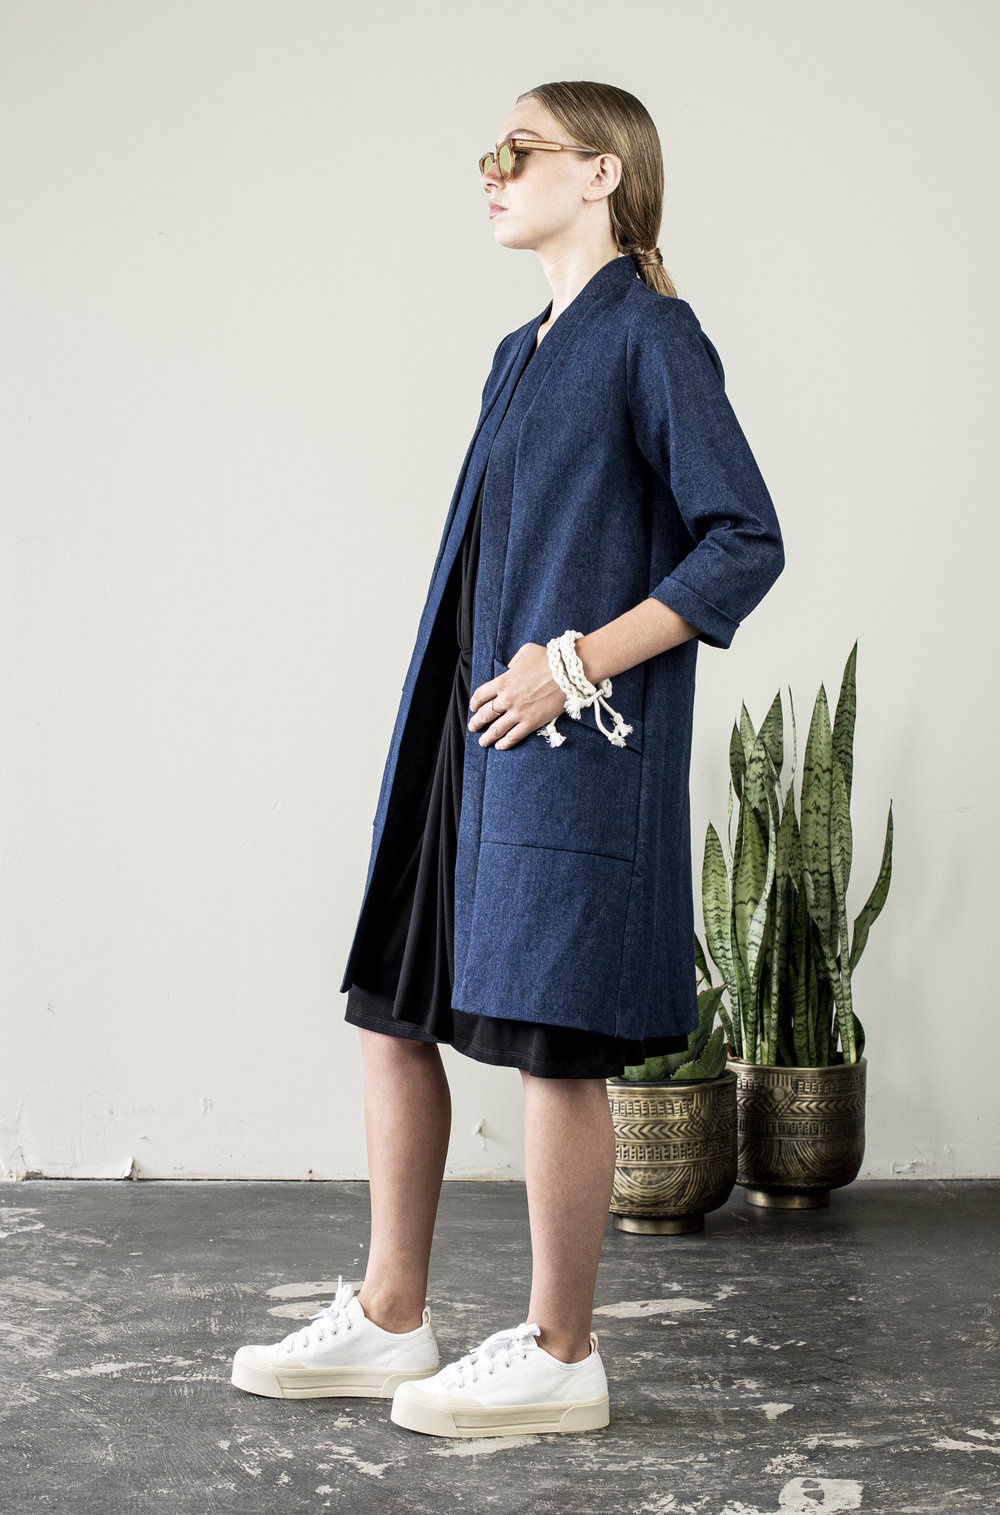 Bodybag Bodybag - Veste Sayulita Denim